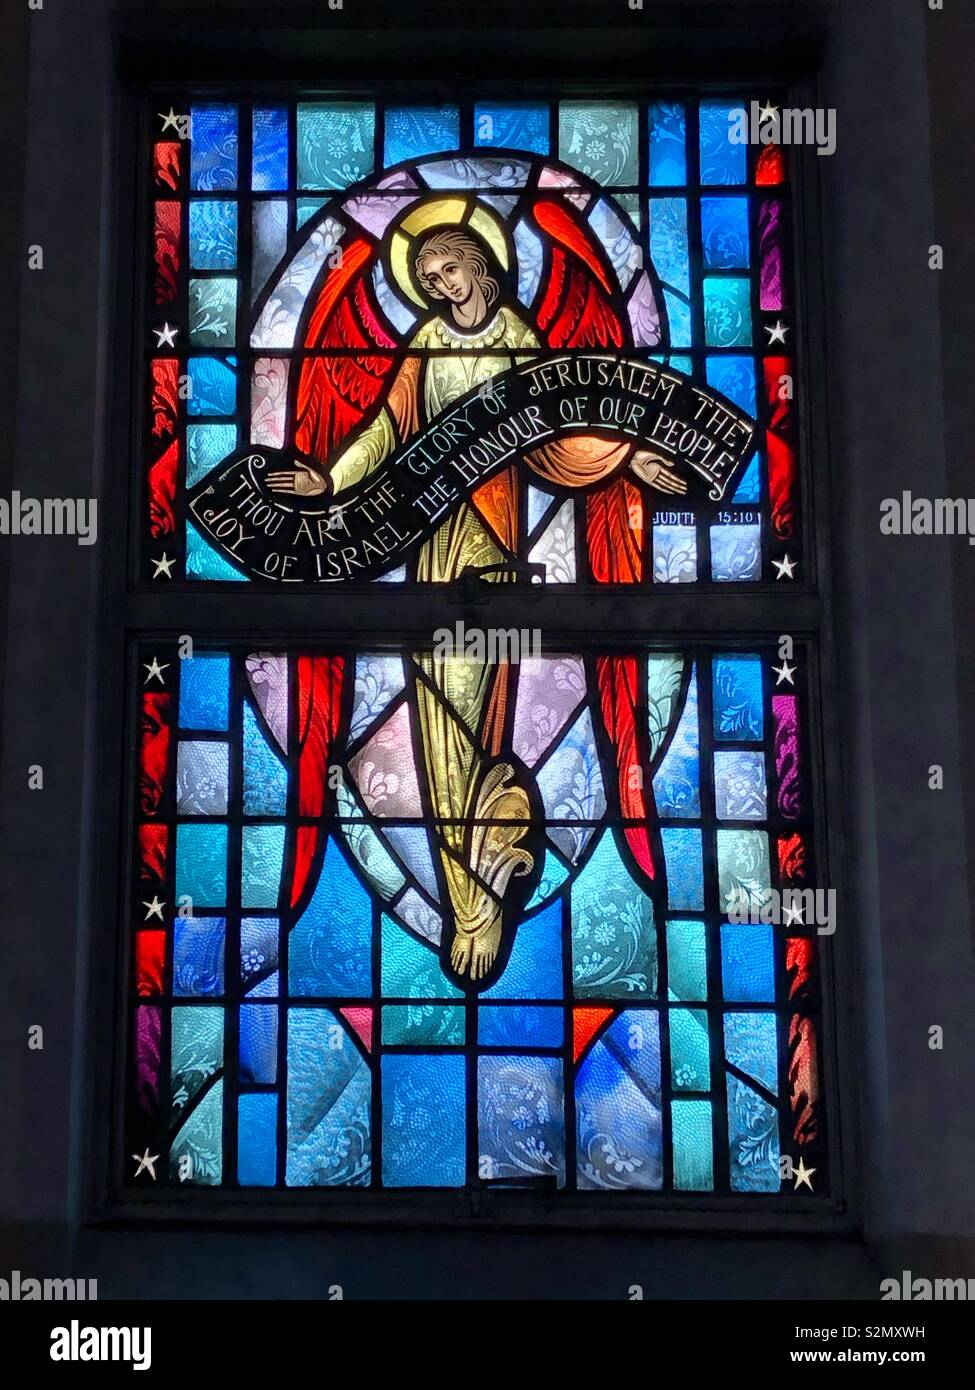 Stained Glass New Orleans.Stained Glass Image Of Angel Holding Banner Honoring Jesus